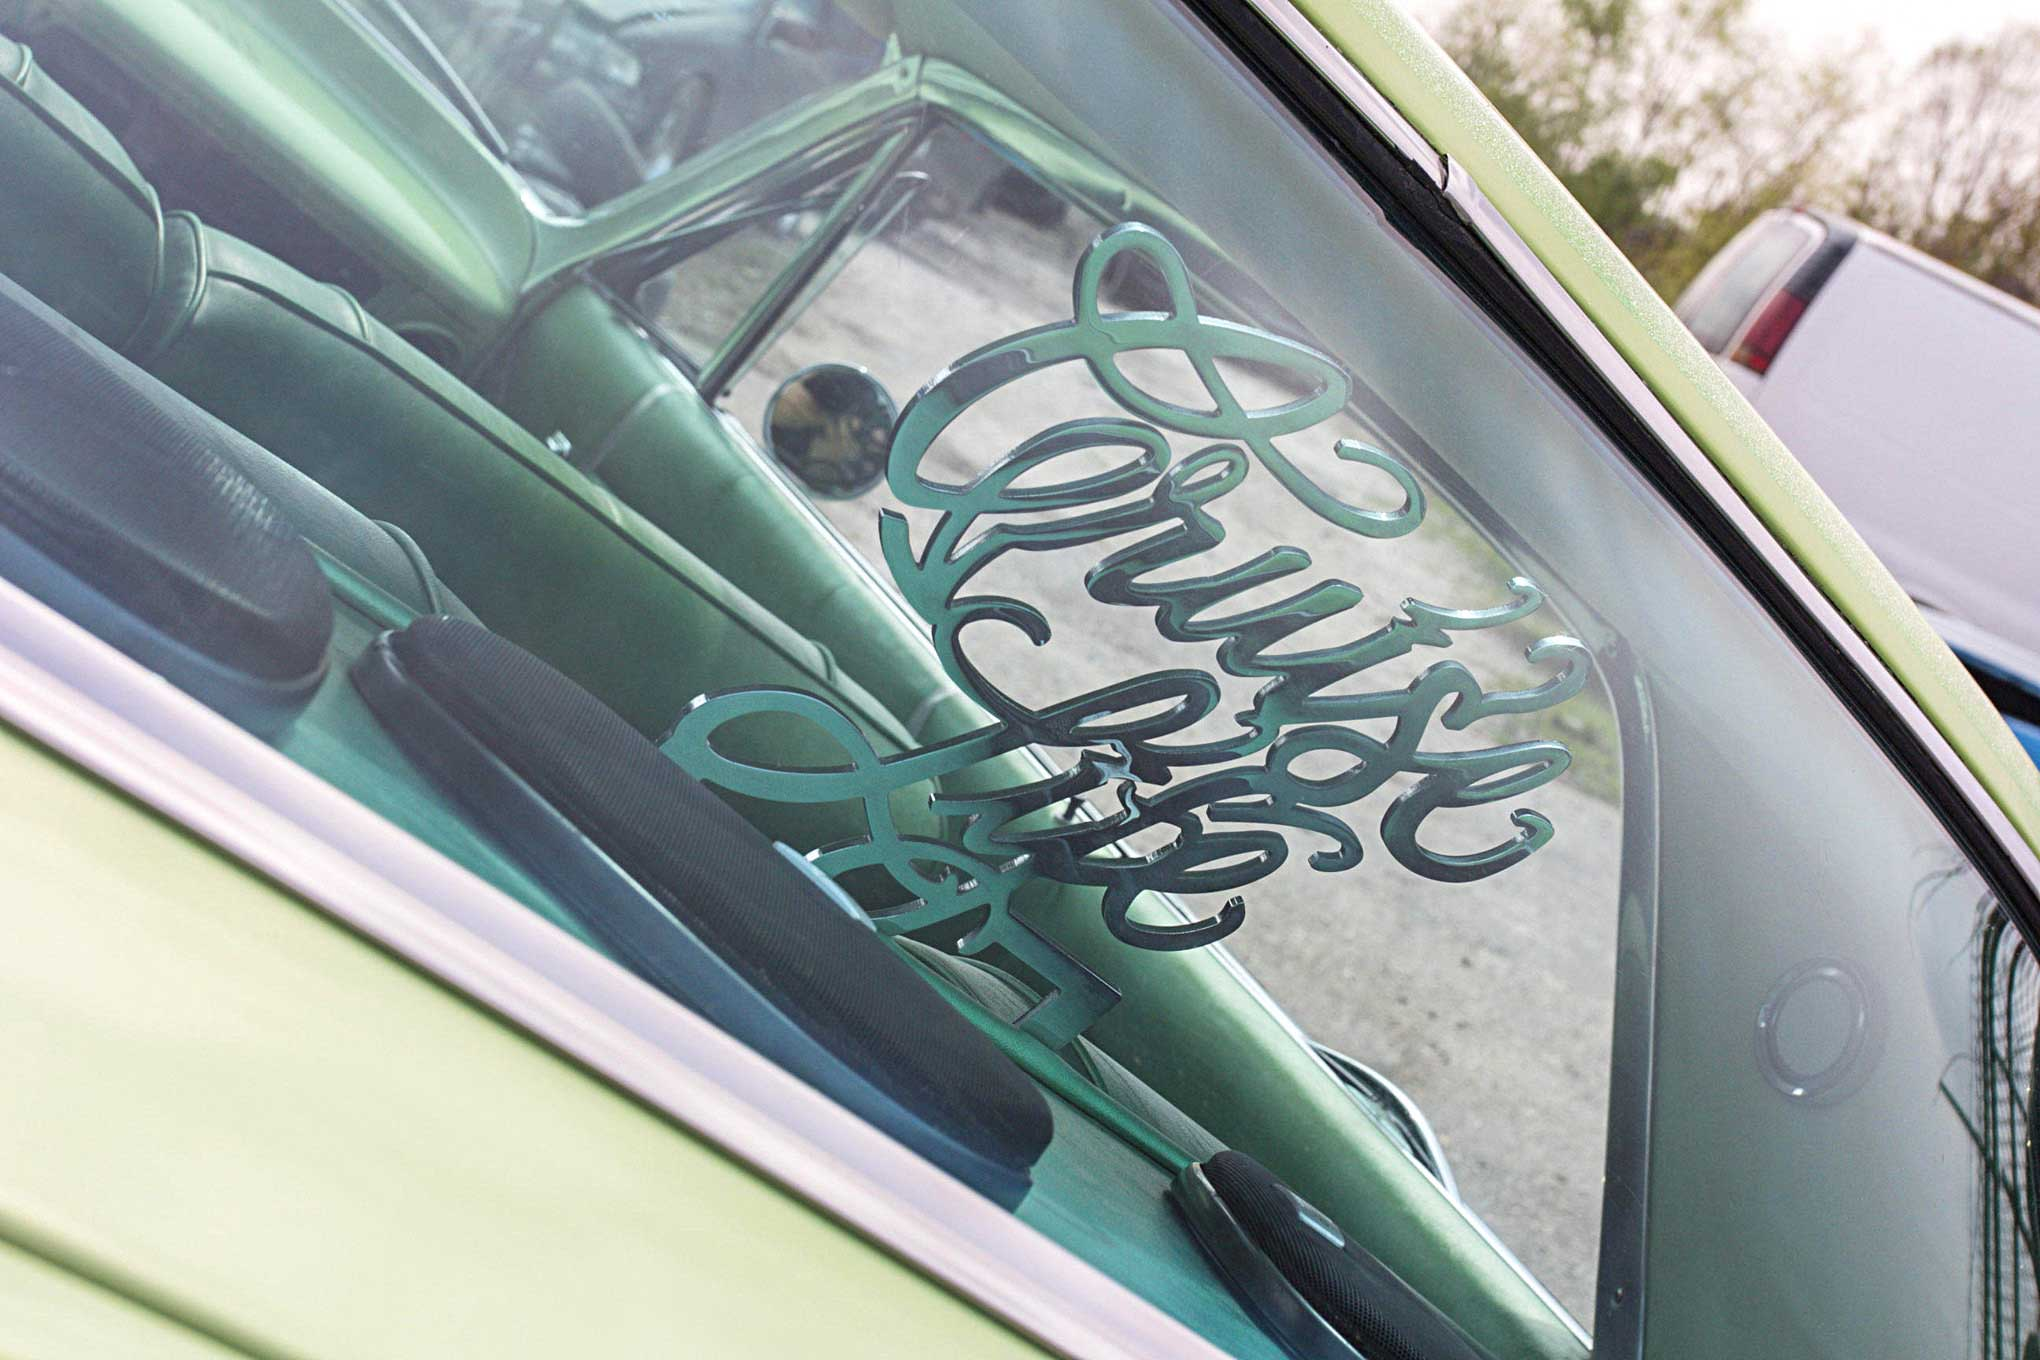 Cruise Life Car Club - Lowrider Revival in New Orleans